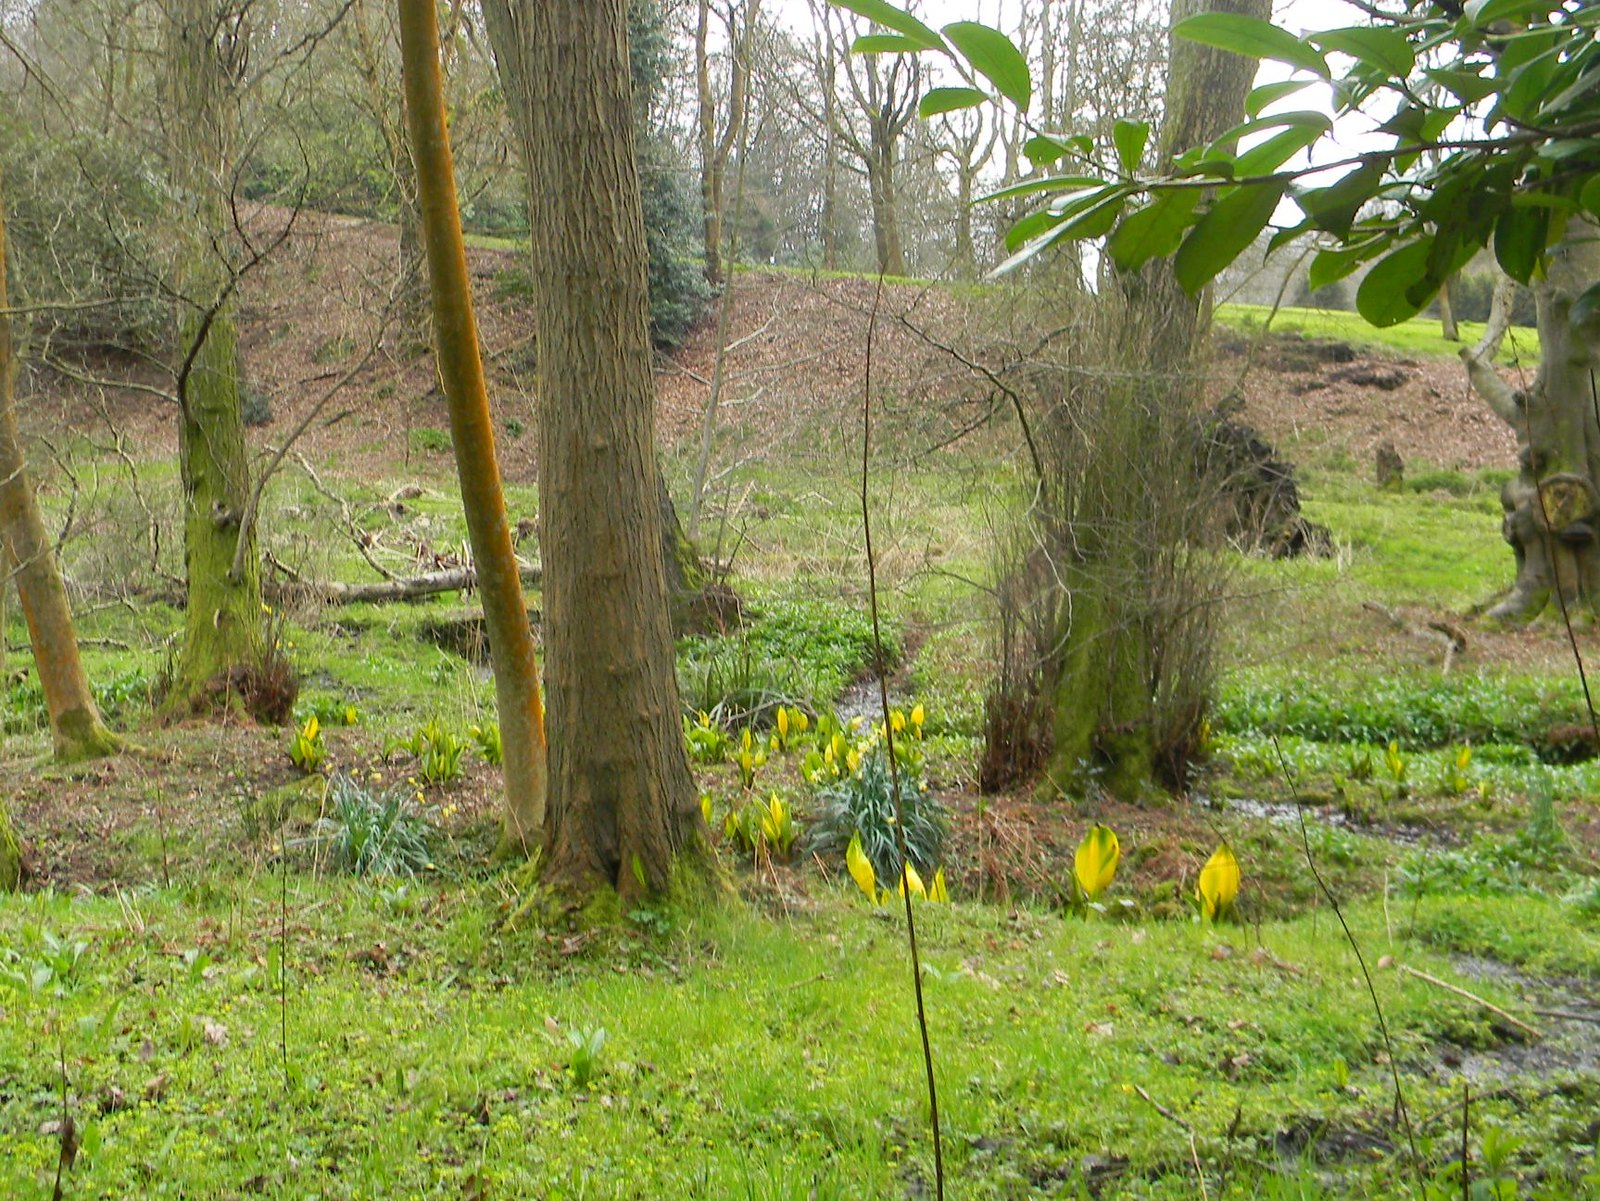 American skunk cabbage (The yellow stuff) Milford to Godalming